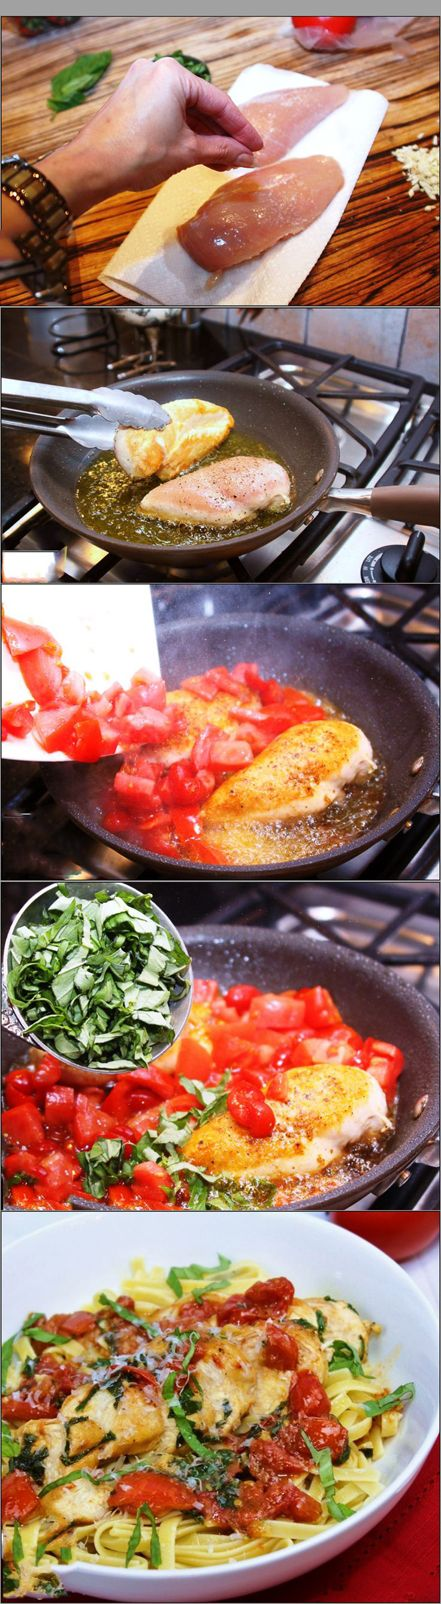 Tomato and Basil Chicken Pasta by recipeknead #Pasta #Tomato #Basil